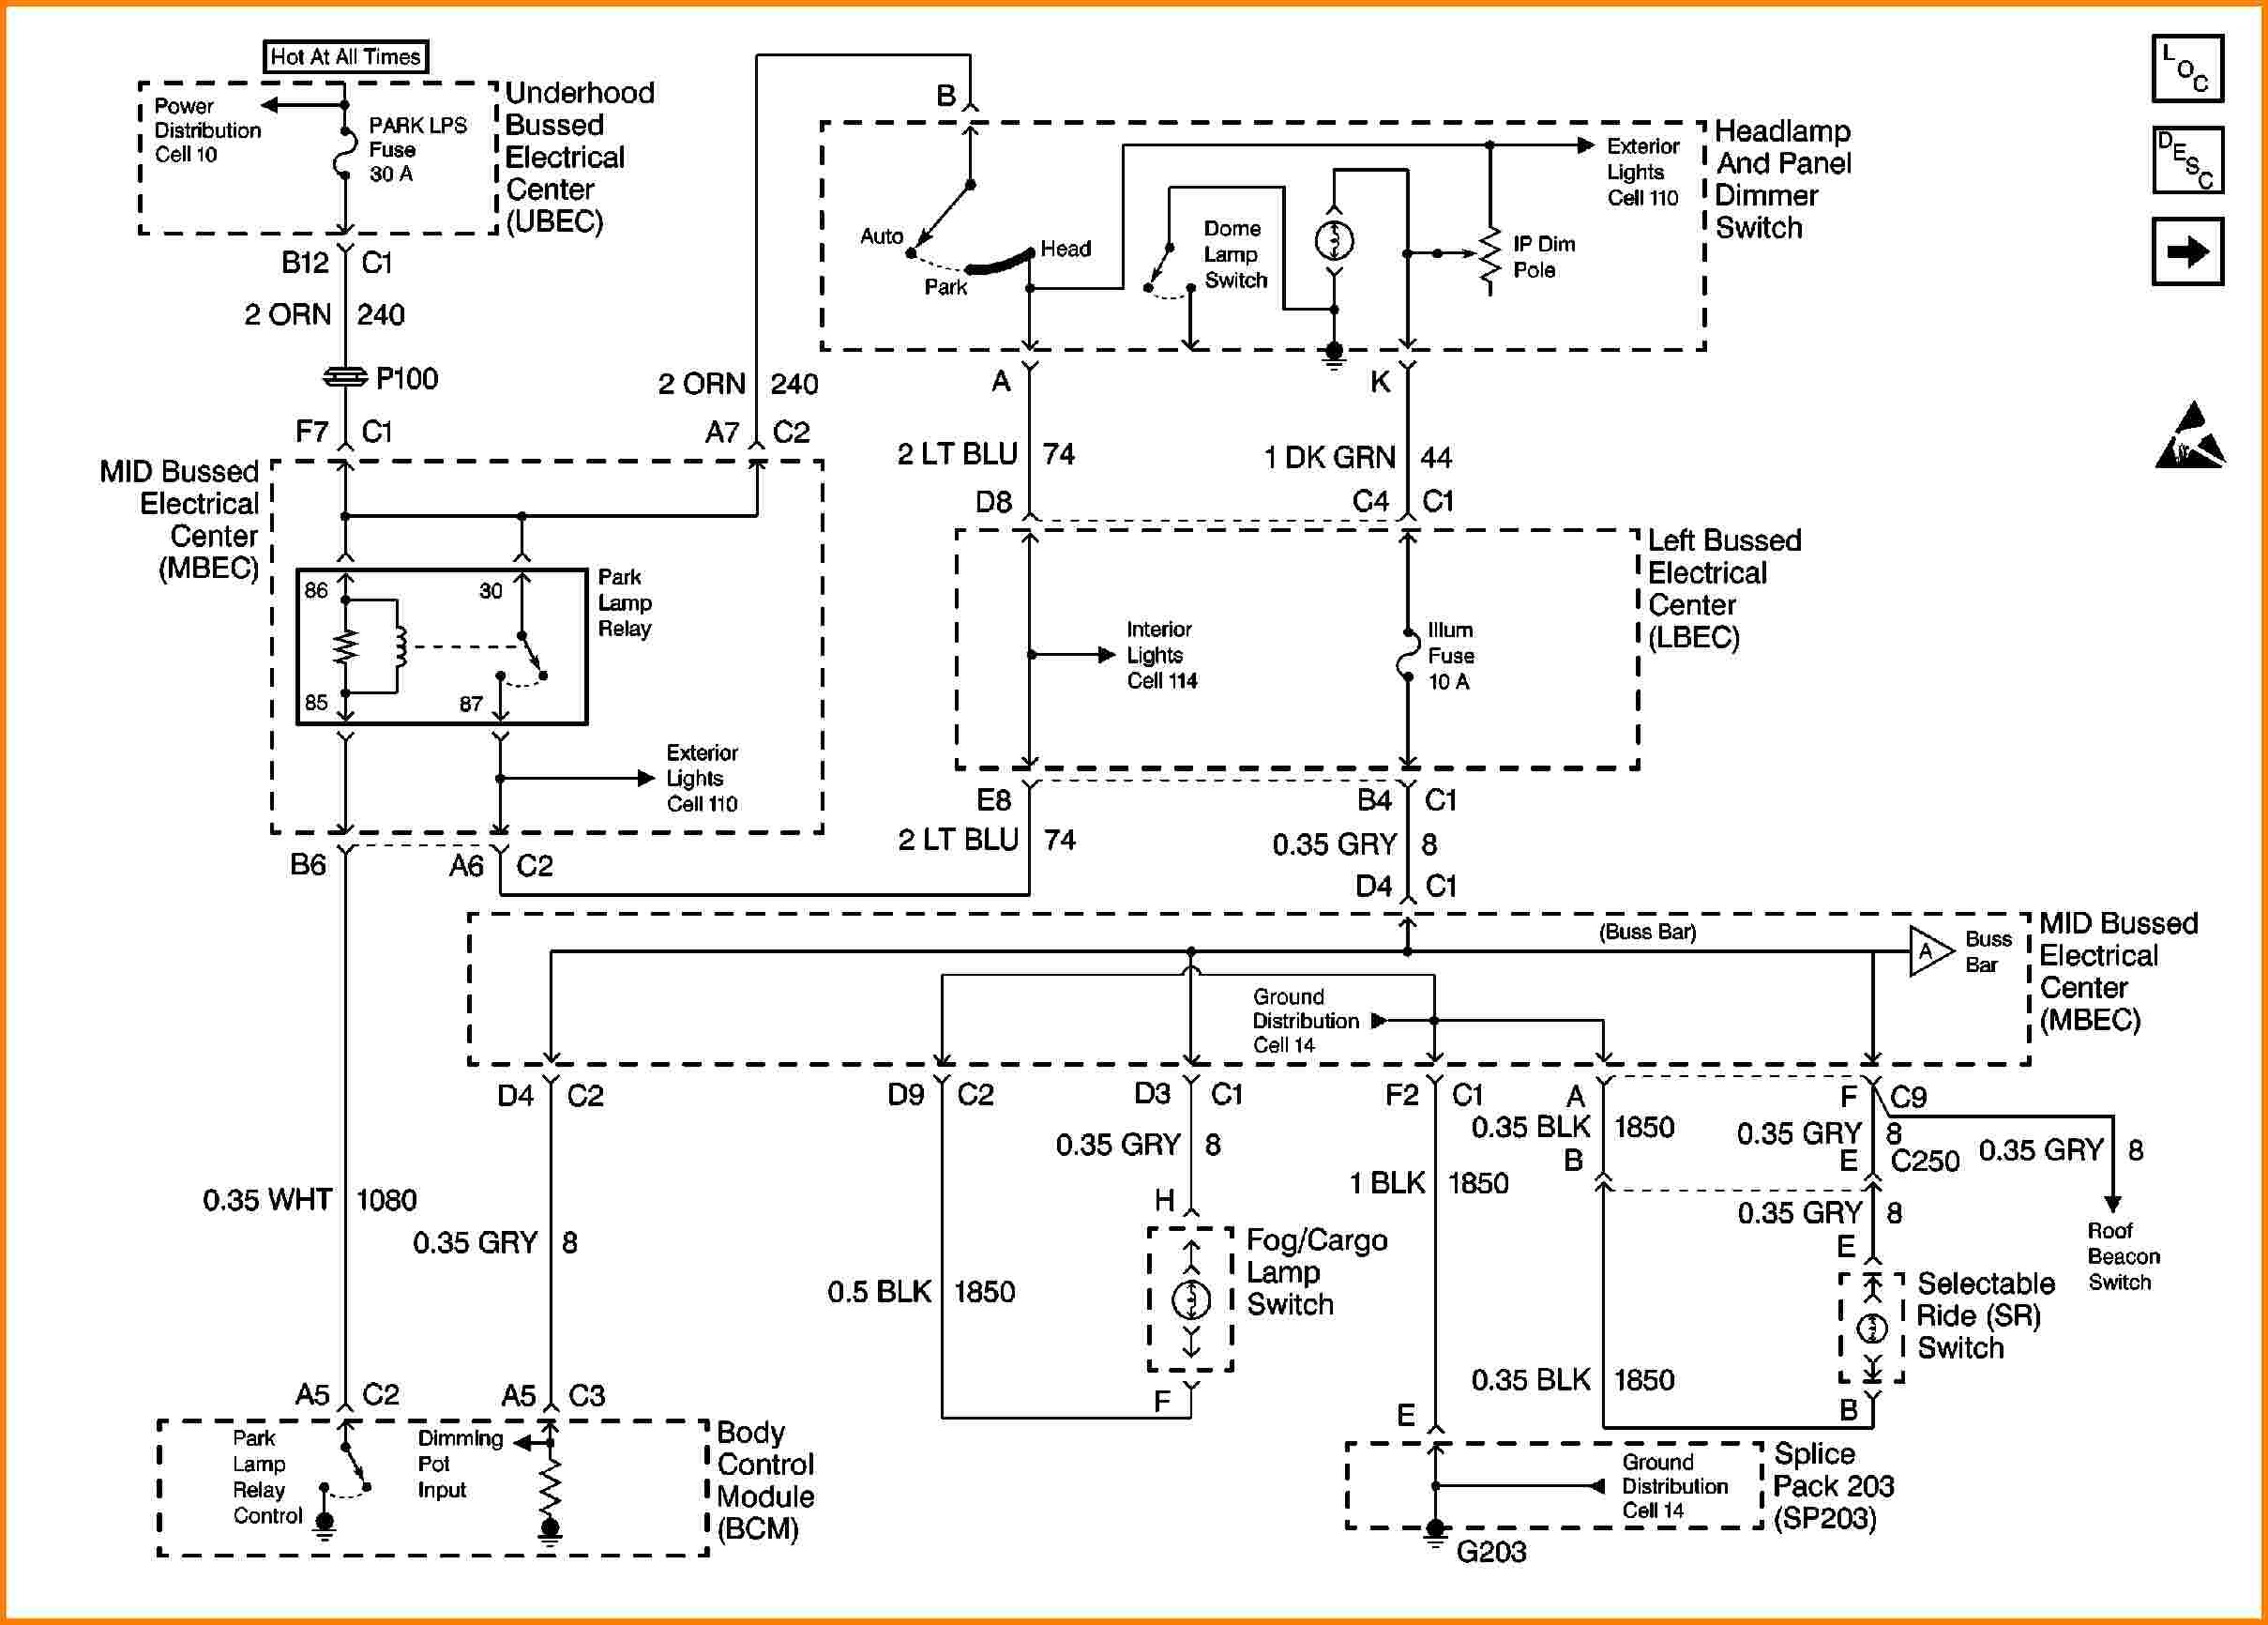 [FPWZ_2684]  Wiring Diagram 2015 Gmc 2500 - 2003 Dodge Ram Radio Wiring for Wiring  Diagram Schematics | 2015 Gmc Wiring Diagram |  | Wiring Diagram Schematics